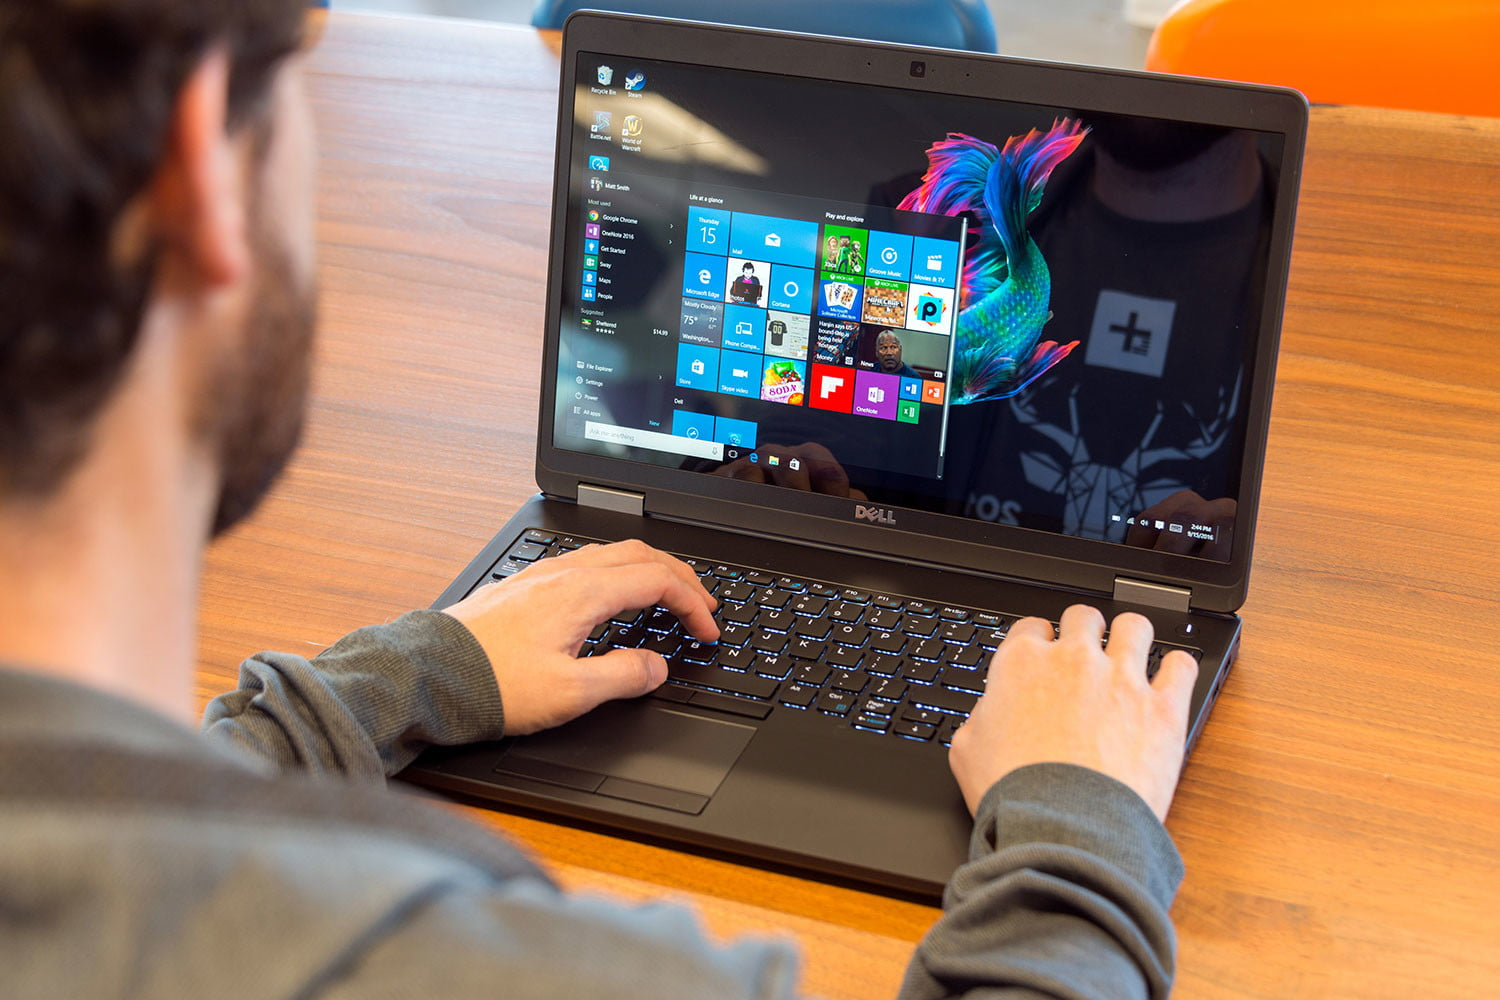 Dell's Precision 15 3510 Review: Power and Ports for Pros